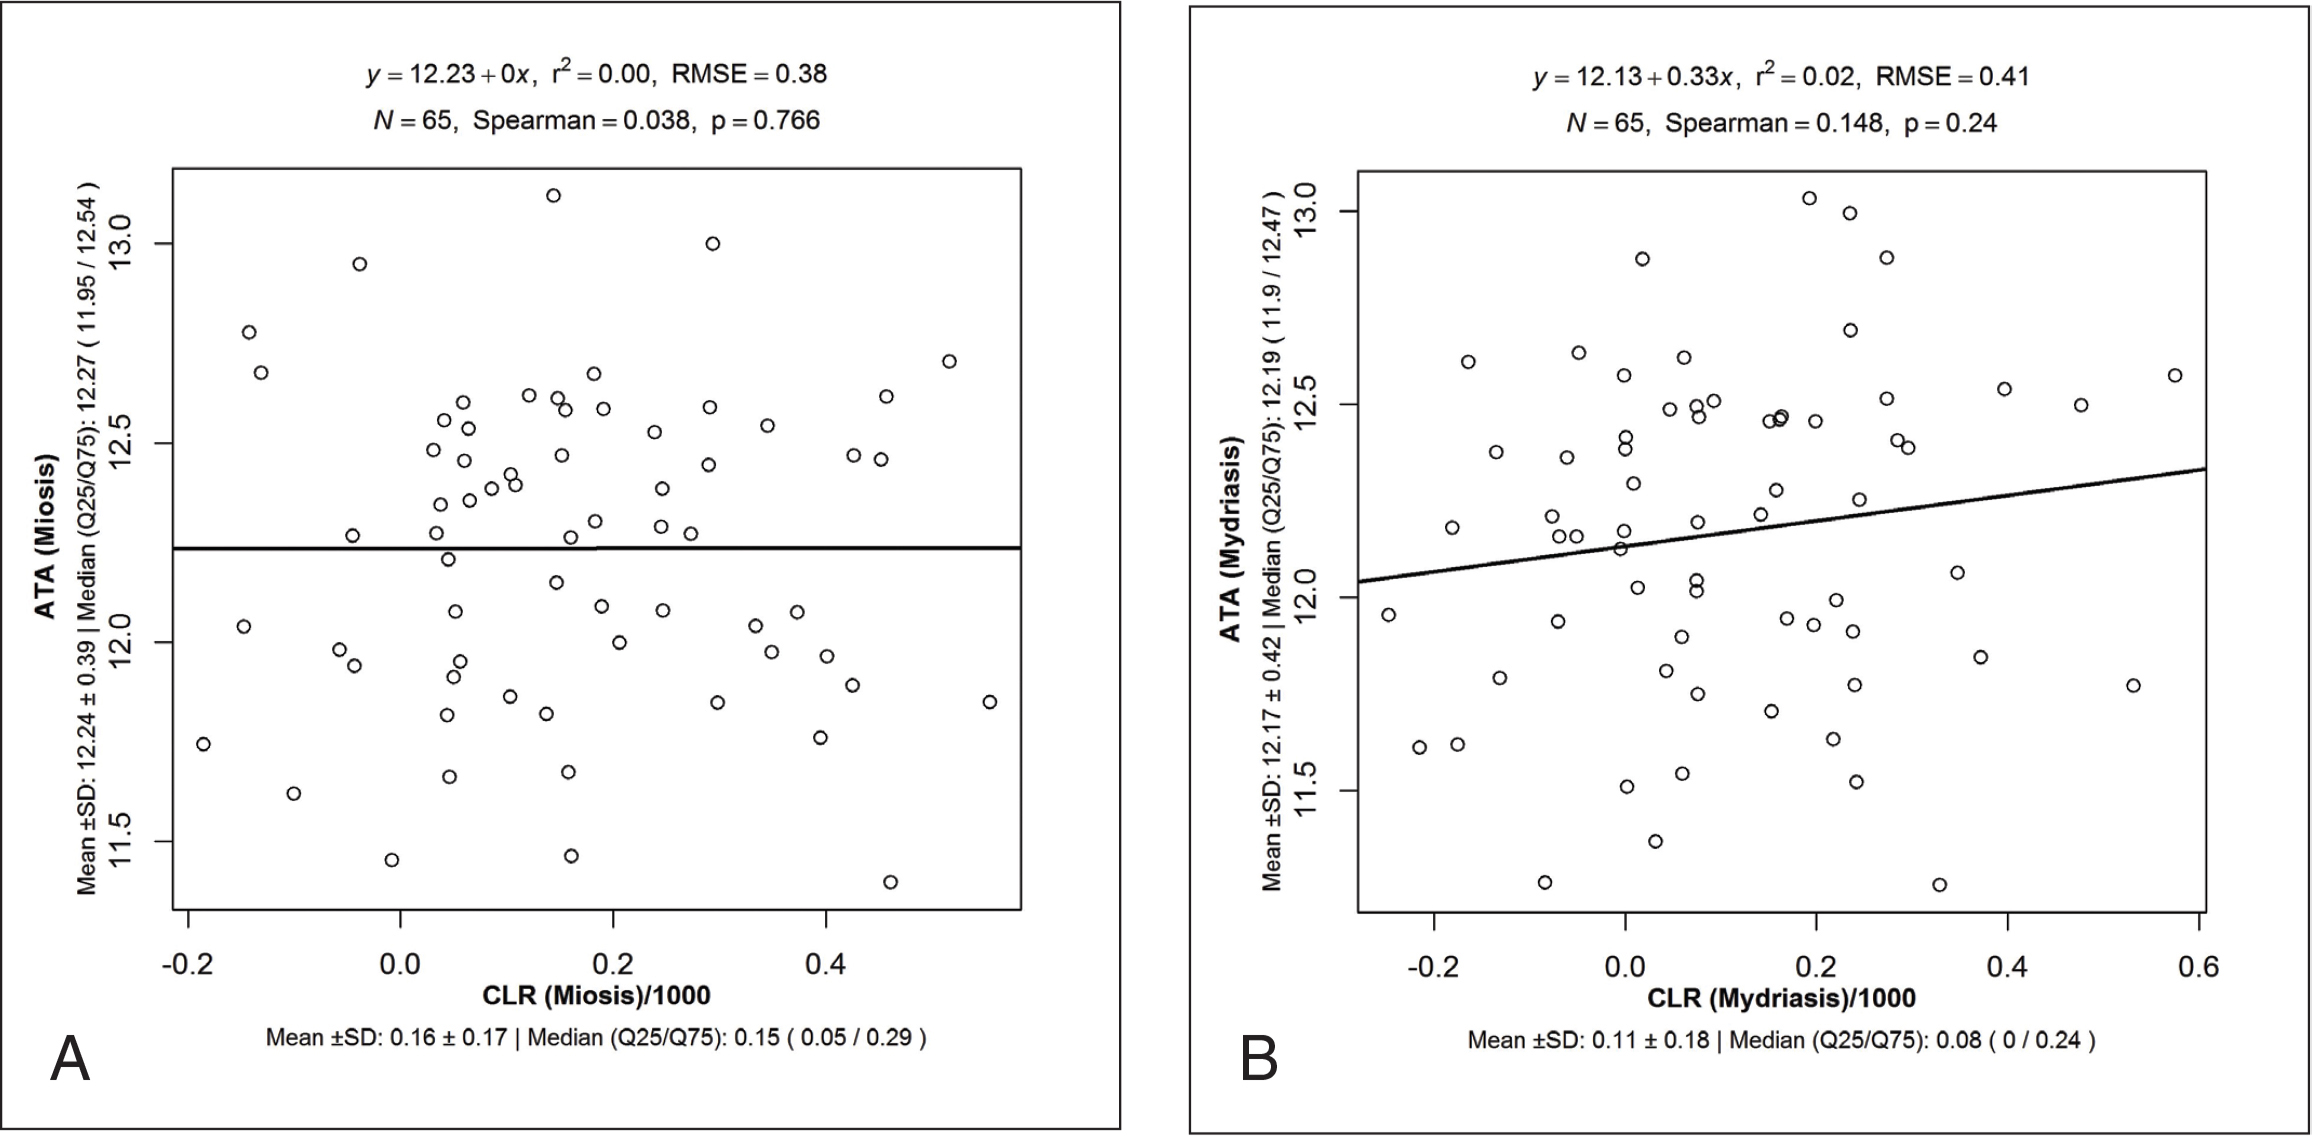 Correlation between crystalline lens rise (CLR) and angle-to-angle distance in miosis and mydriasis.